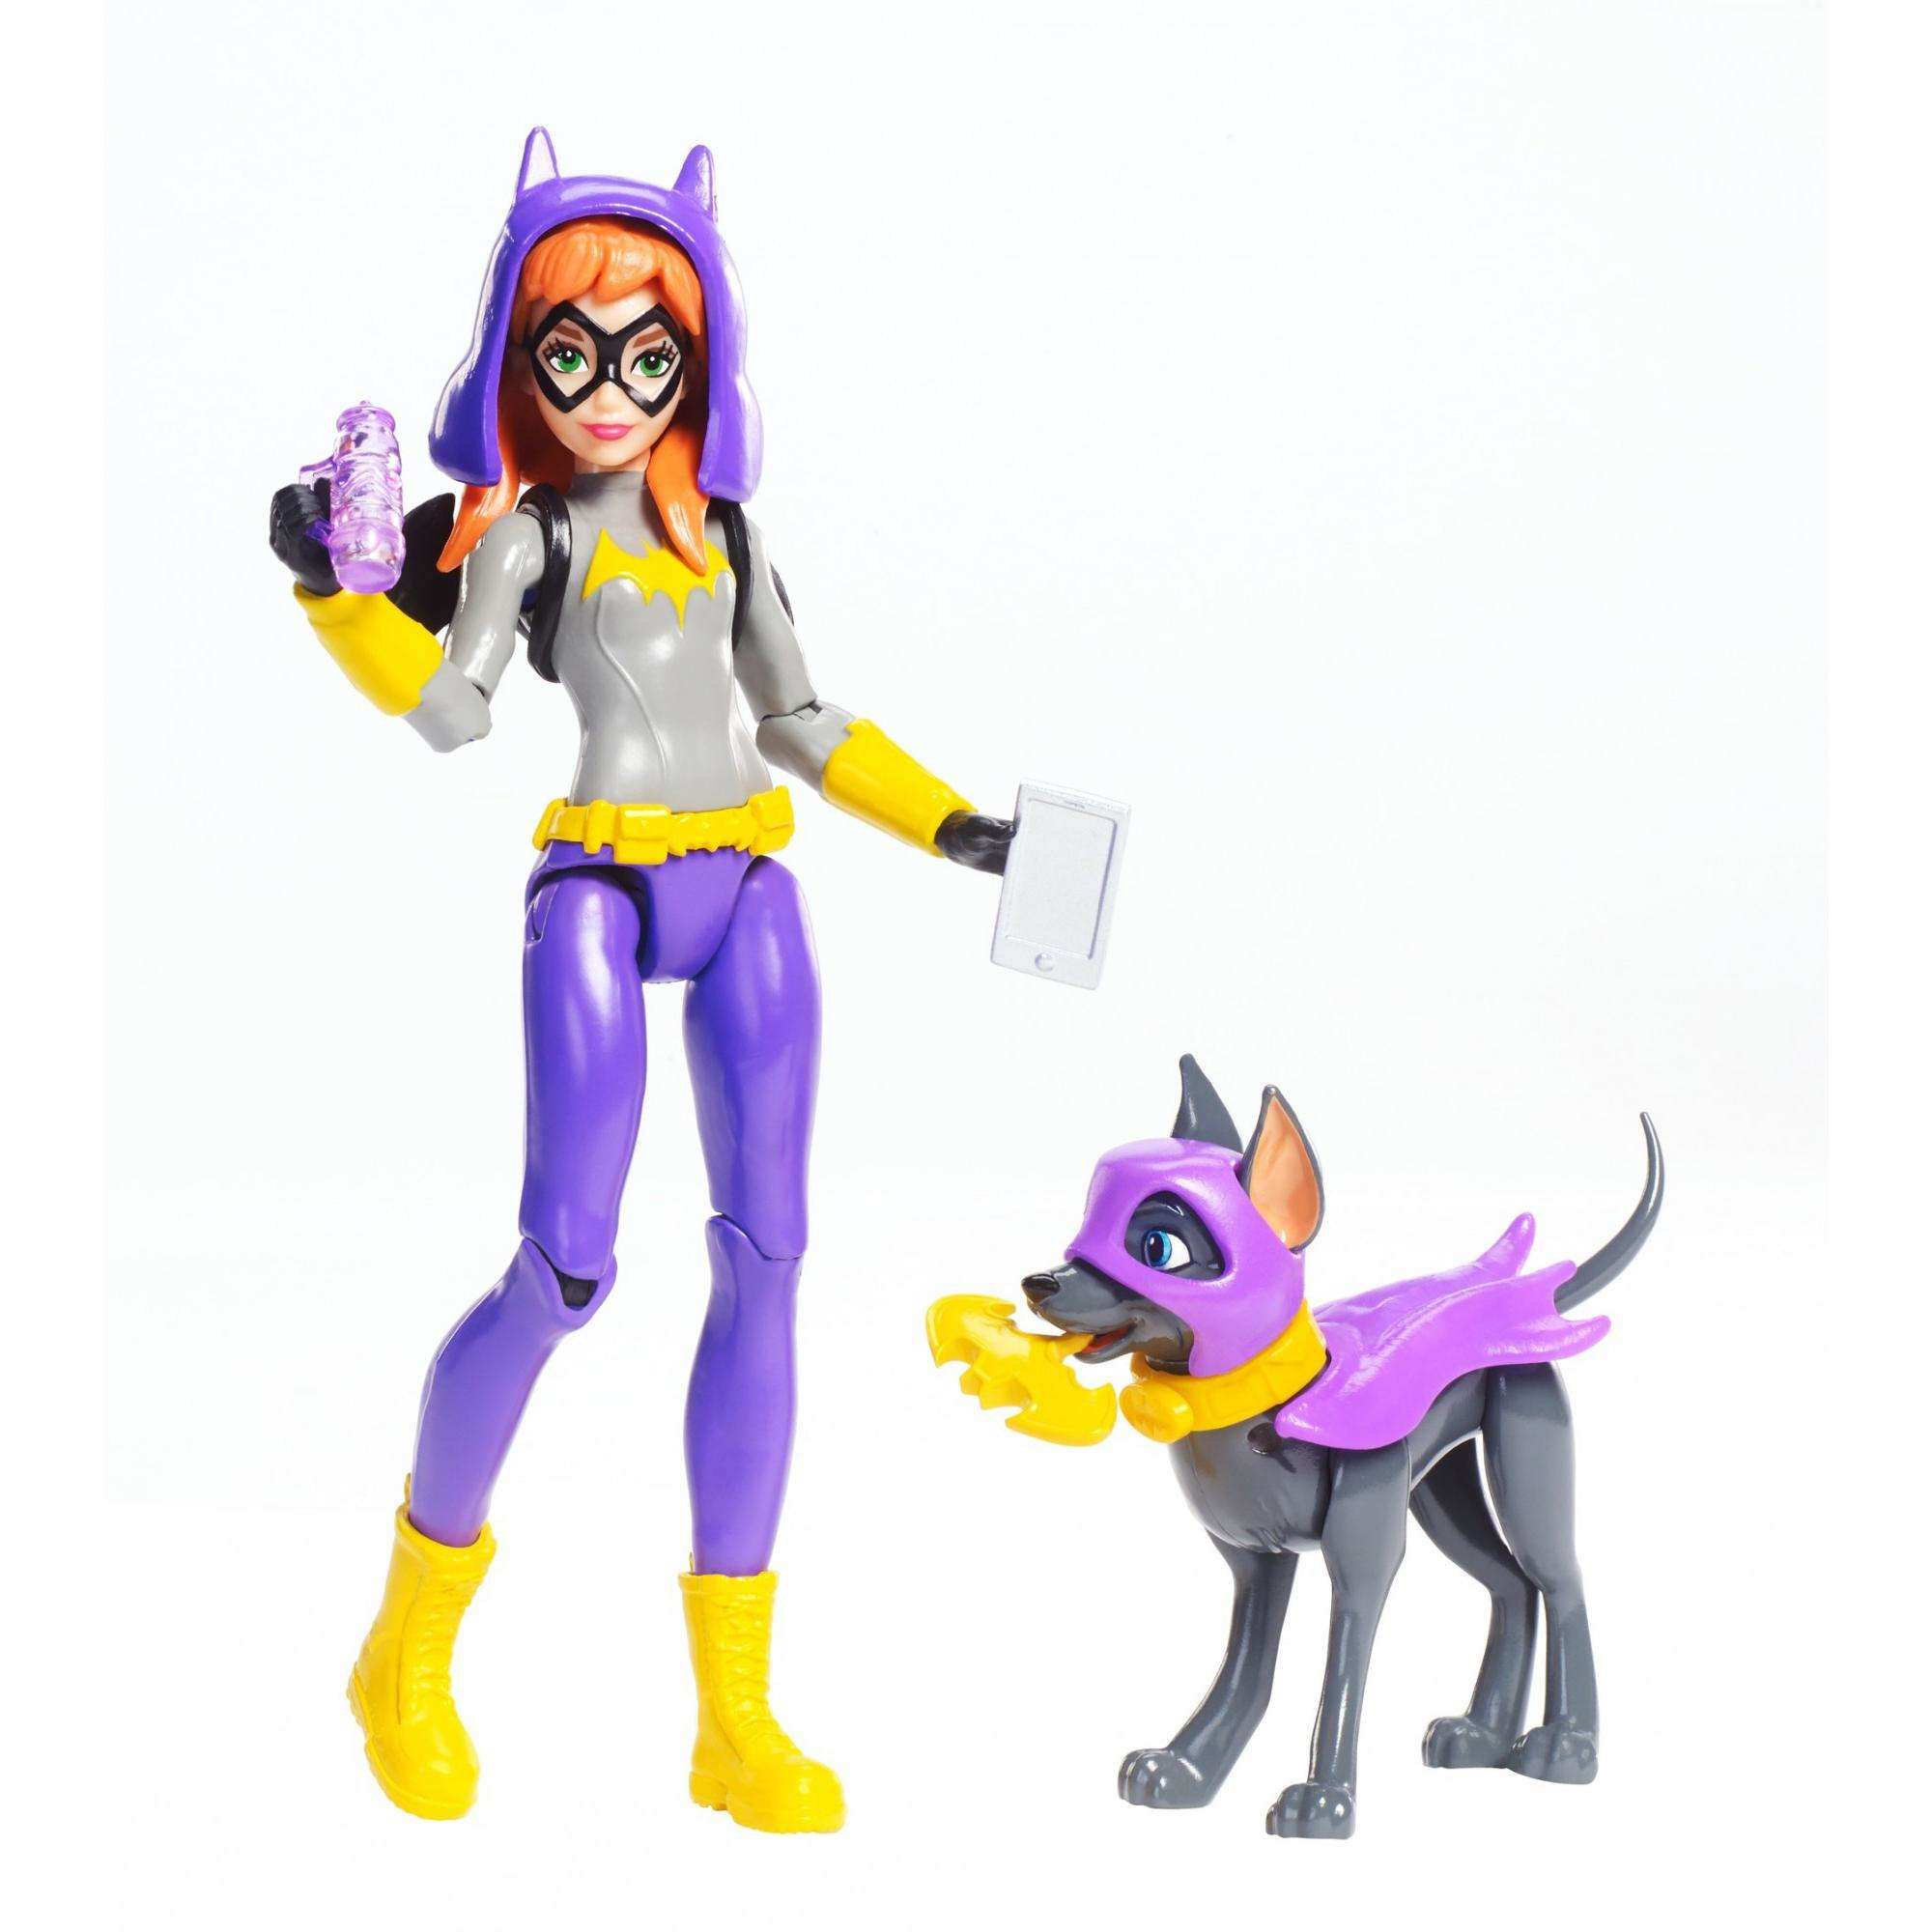 DC Super Hero Girls Batgirl Figure with Pet